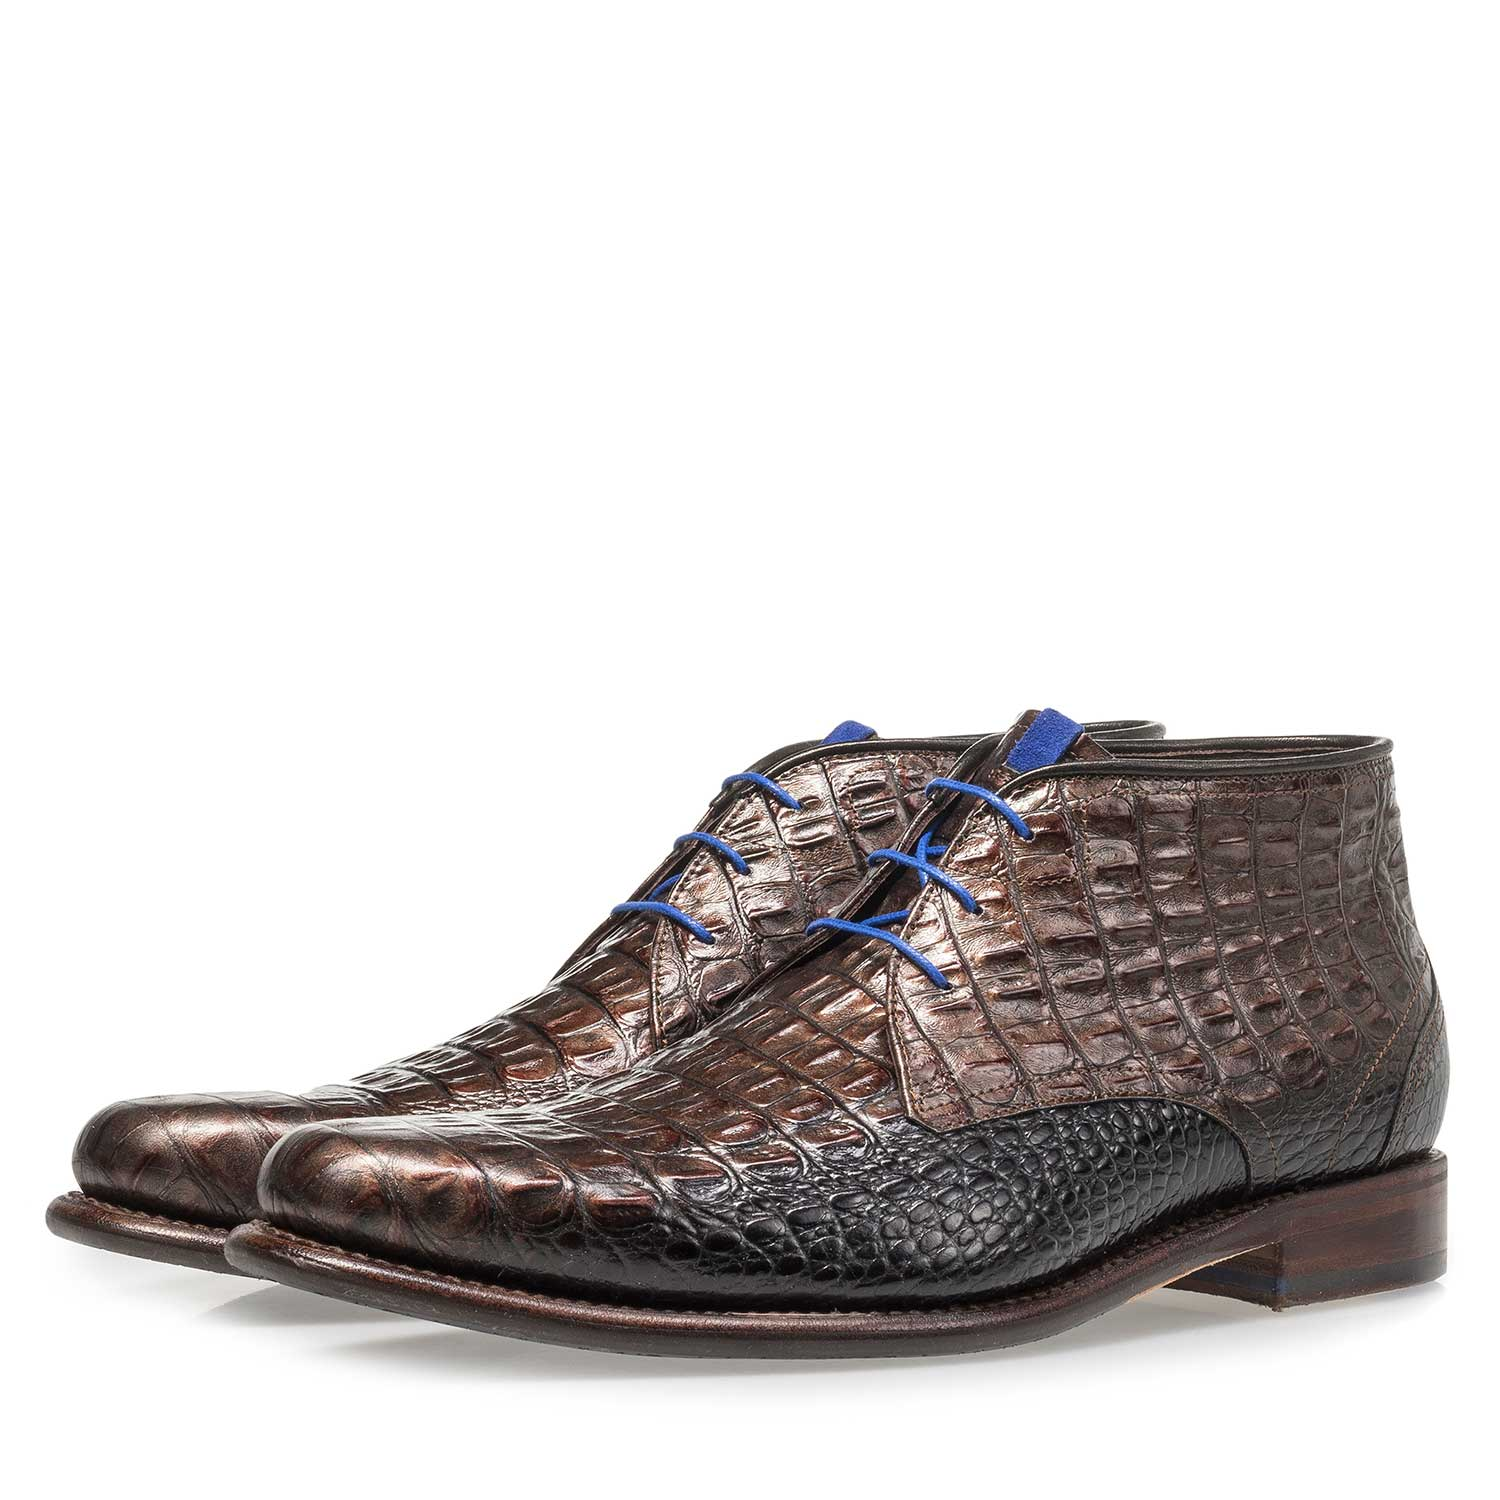 10634/08 - Bronze-coloured leather lace boot with croco print